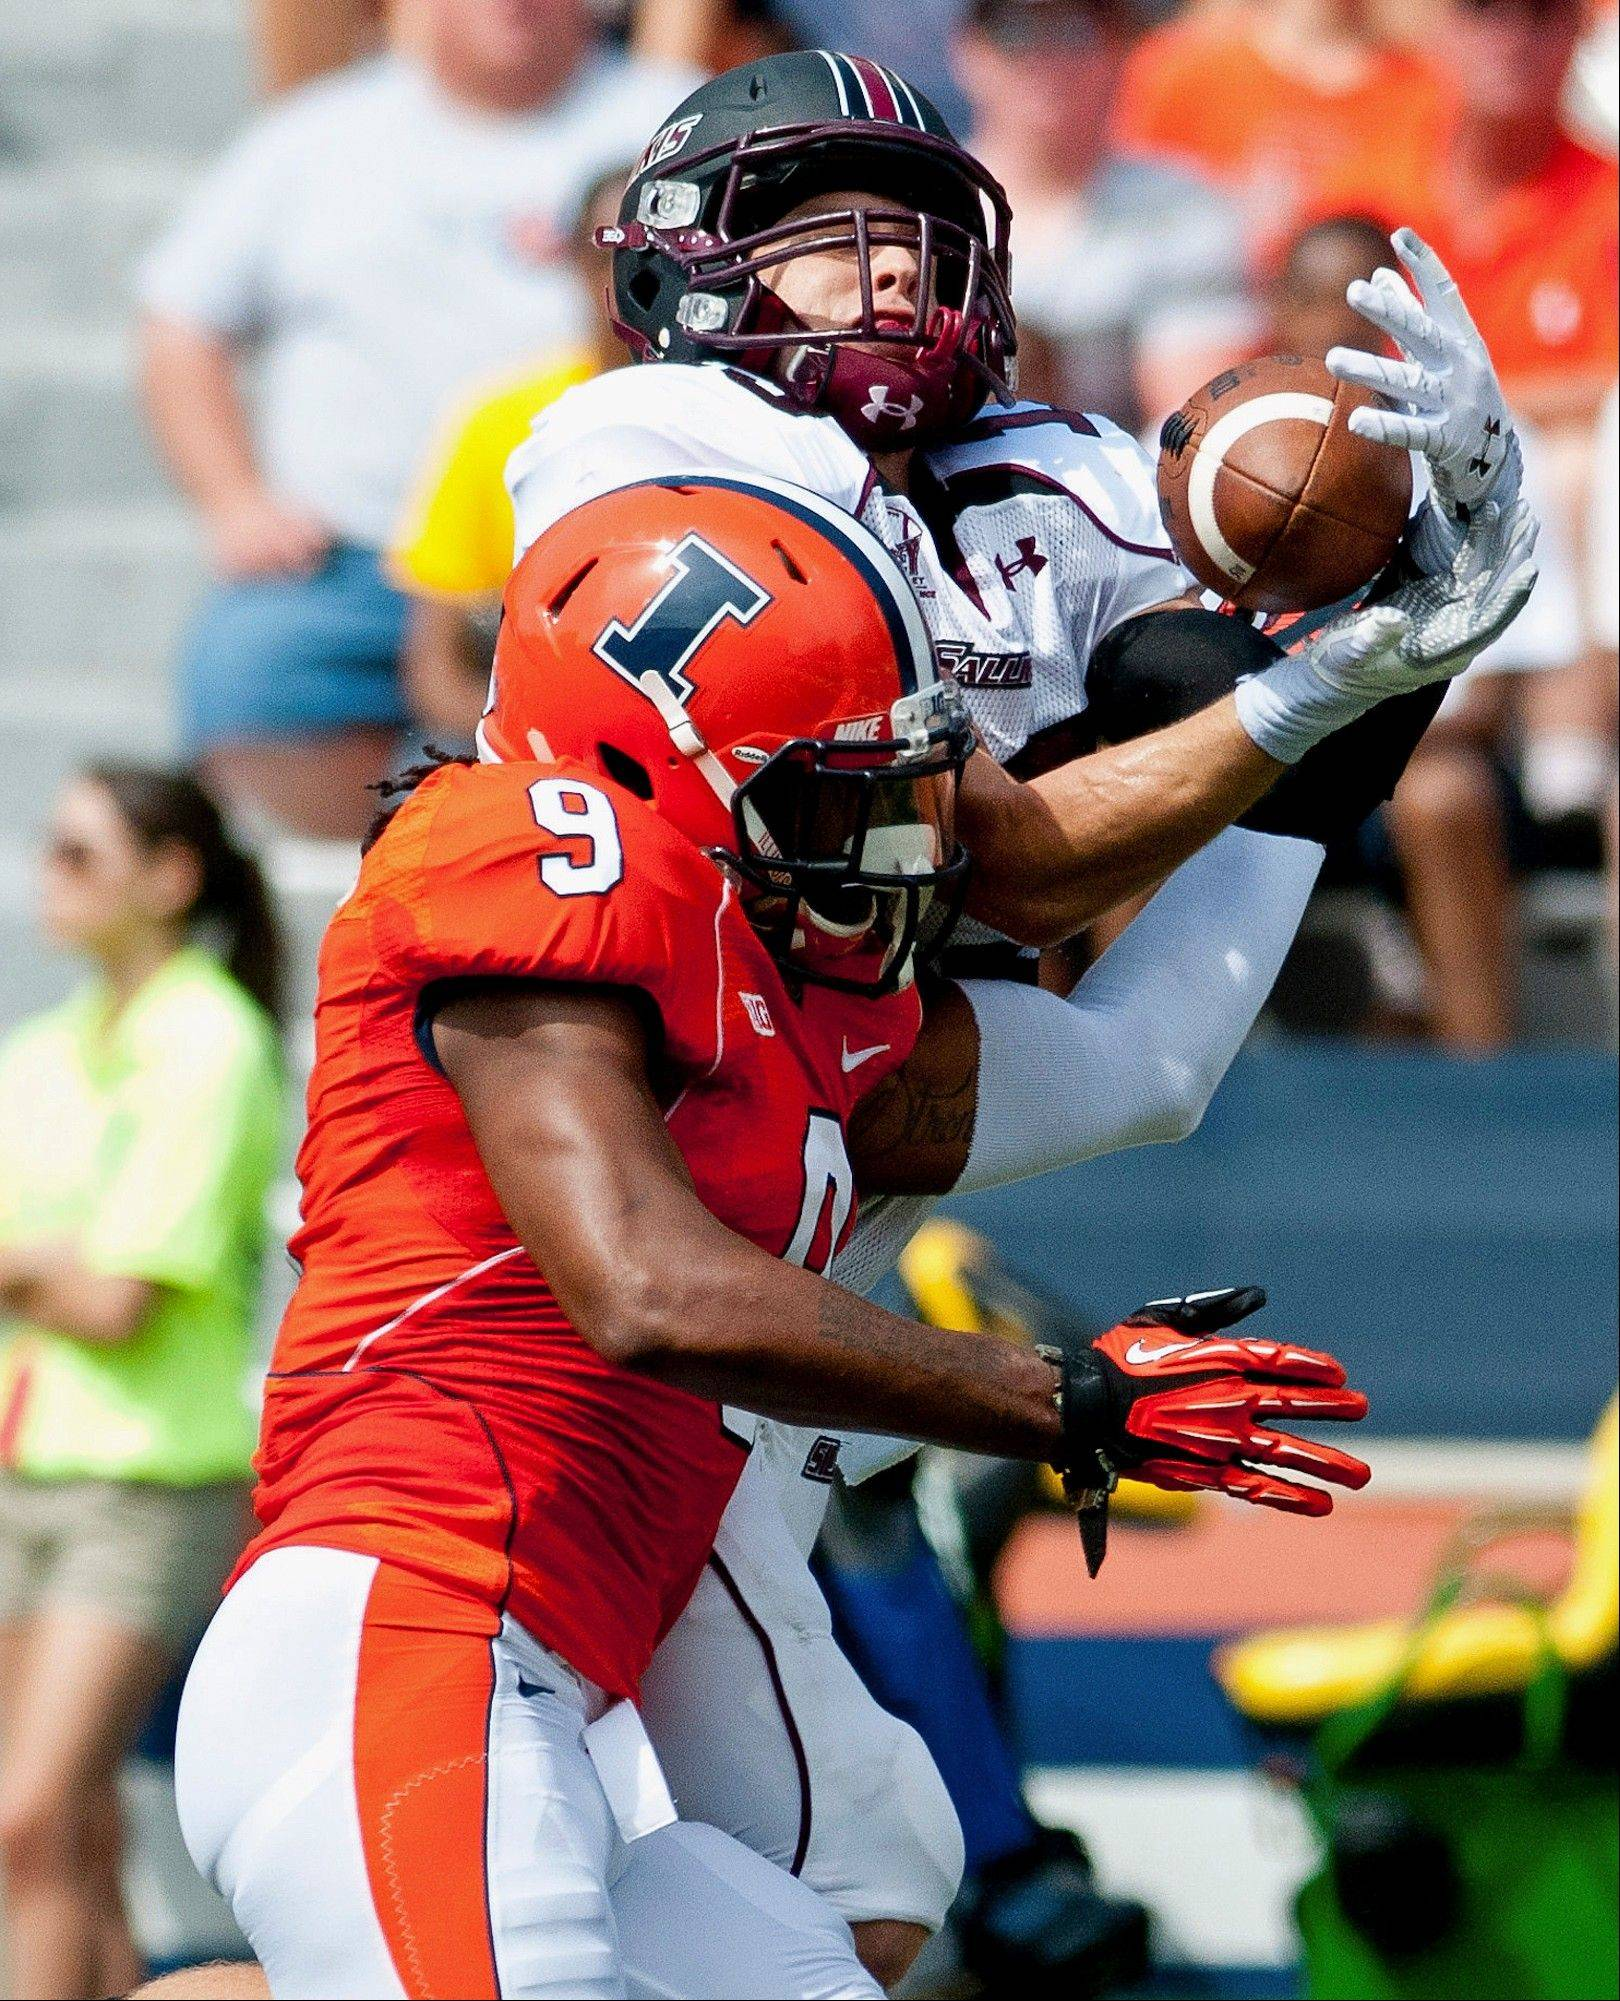 Southern Illinois wide receiver John Lantz makes a catch behind Illinois defensive back Earnest Thomas last Saturday in Champaign. Illinois' defense was a liability in the season opener against SIU.